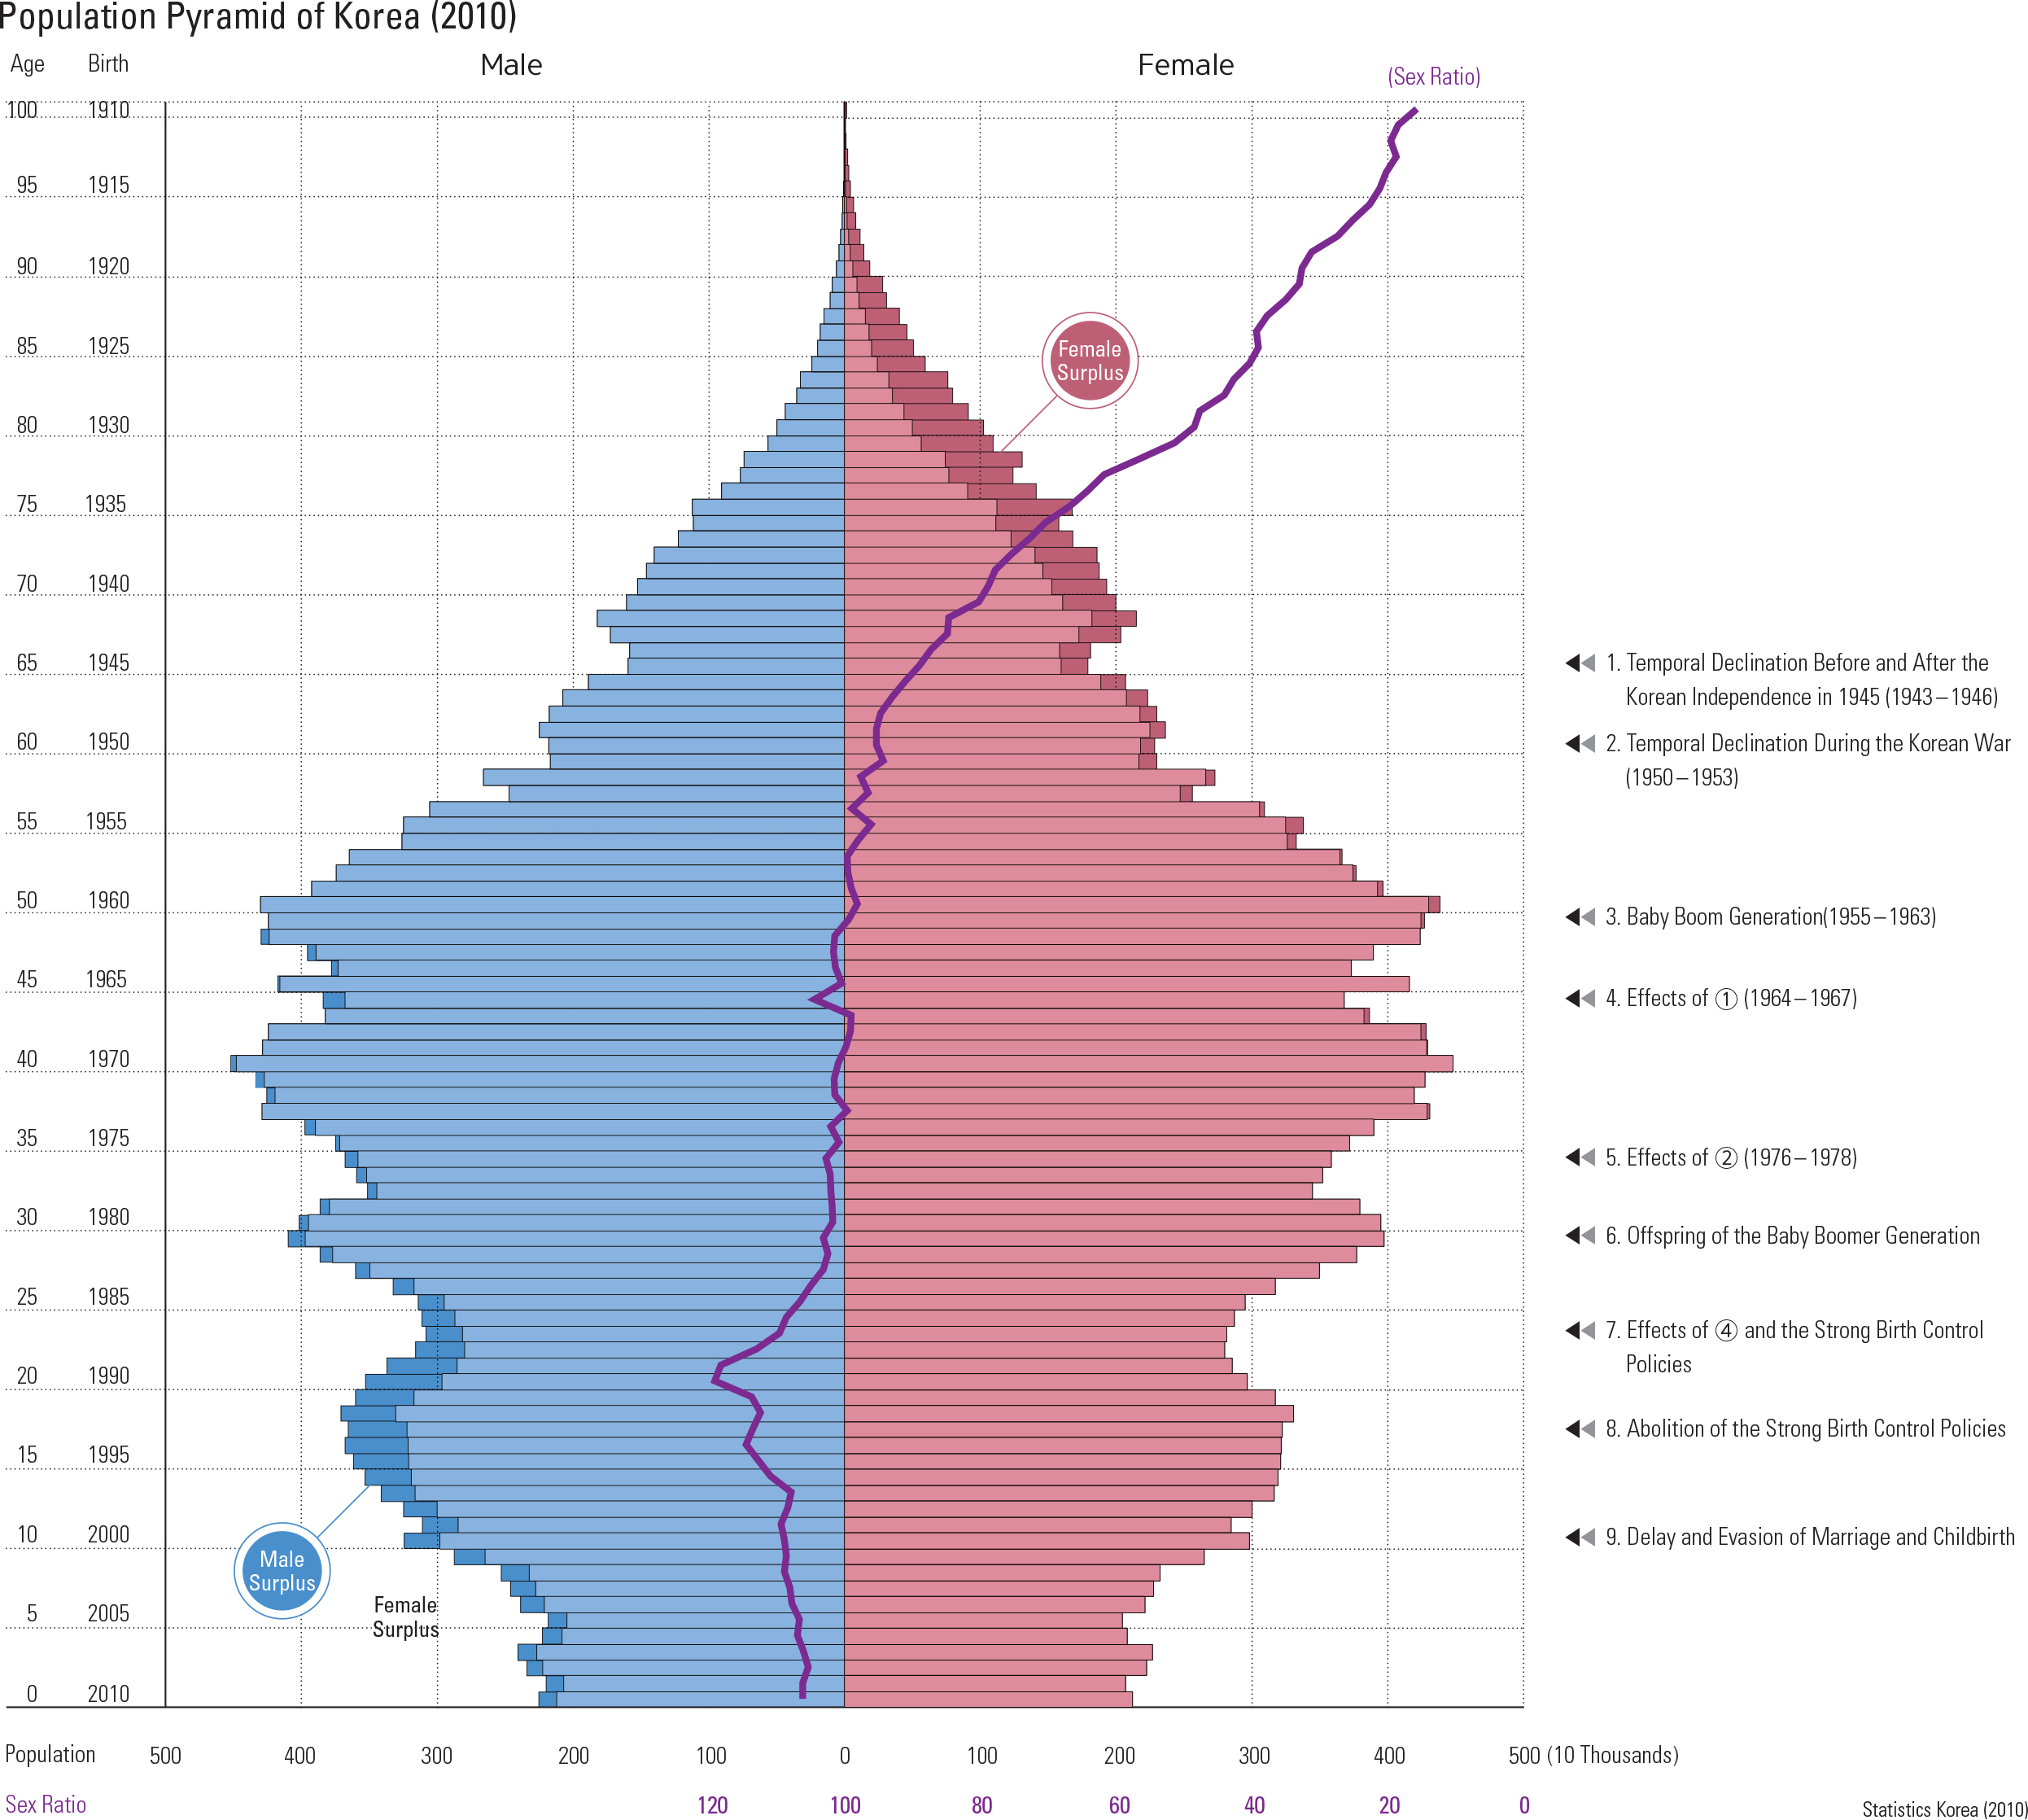 "Population Pyramid of Korea (2010)<p class=""oz_zoom"" zimg=""http://imagedata.cafe24.com/us_3/us3_112-1_2.jpg""><span style=""font-family:Nanum Myeongjo;""><span style=""font-size:18px;""><span class=""label label-danger"">UPDATE DATA</span></span></p>"